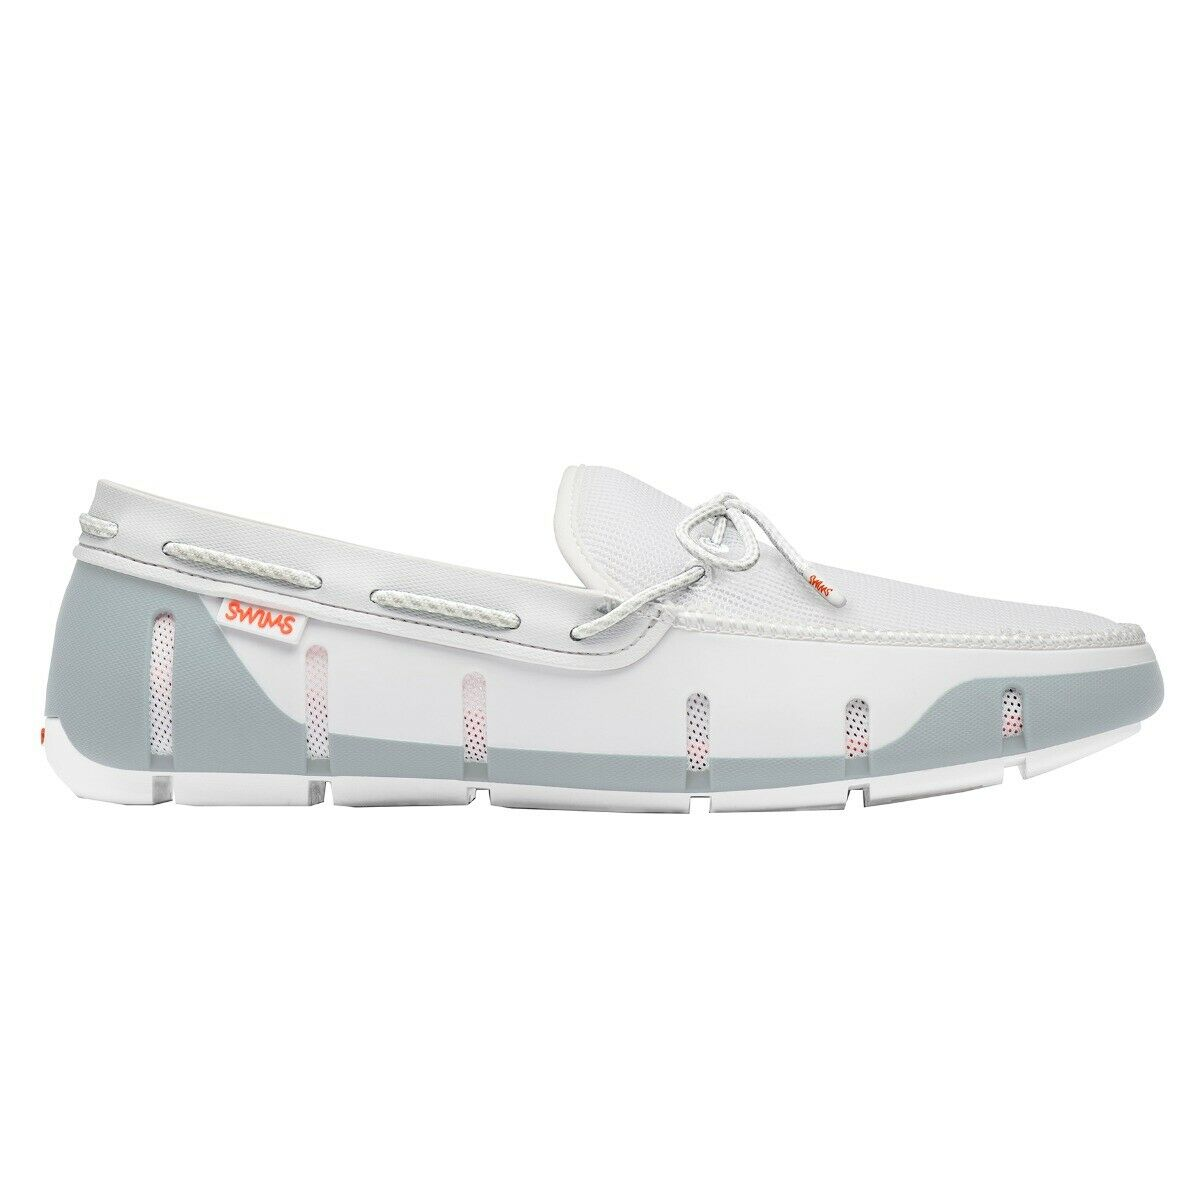 Swims NEW Men's Stride Lace Loafers White Alloy BNWT   great selection & quick delivery